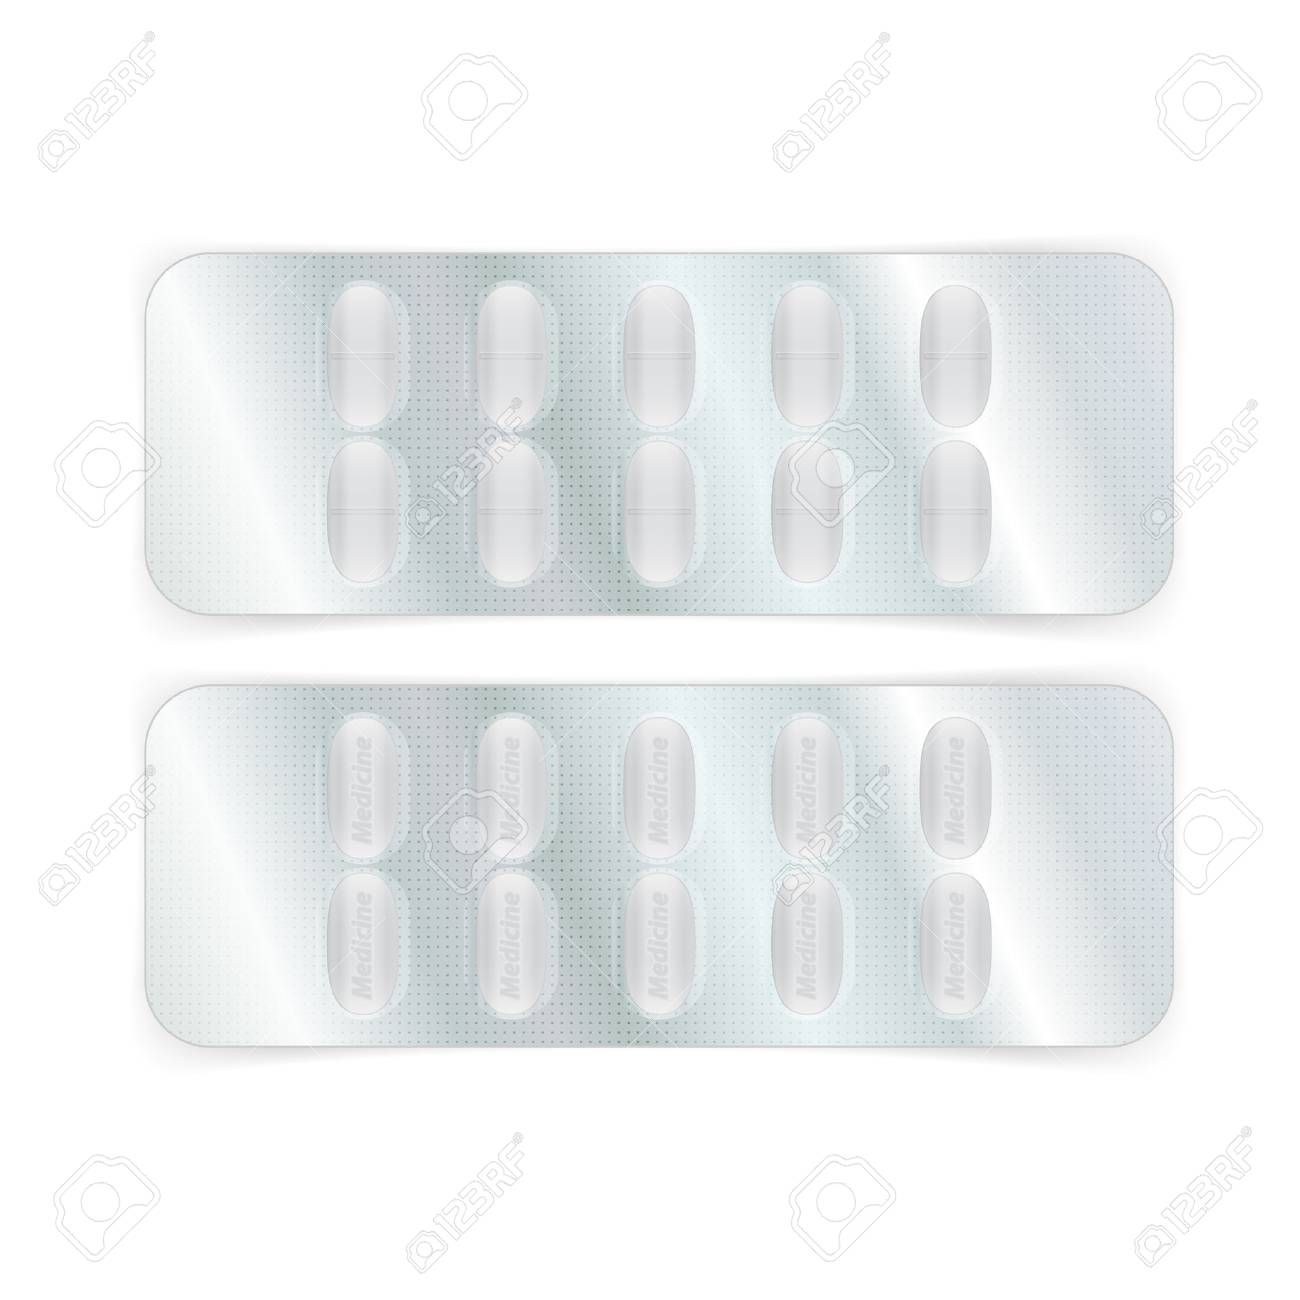 Oval White Pills In A Blister Pack Vector Illustration Royalty Free